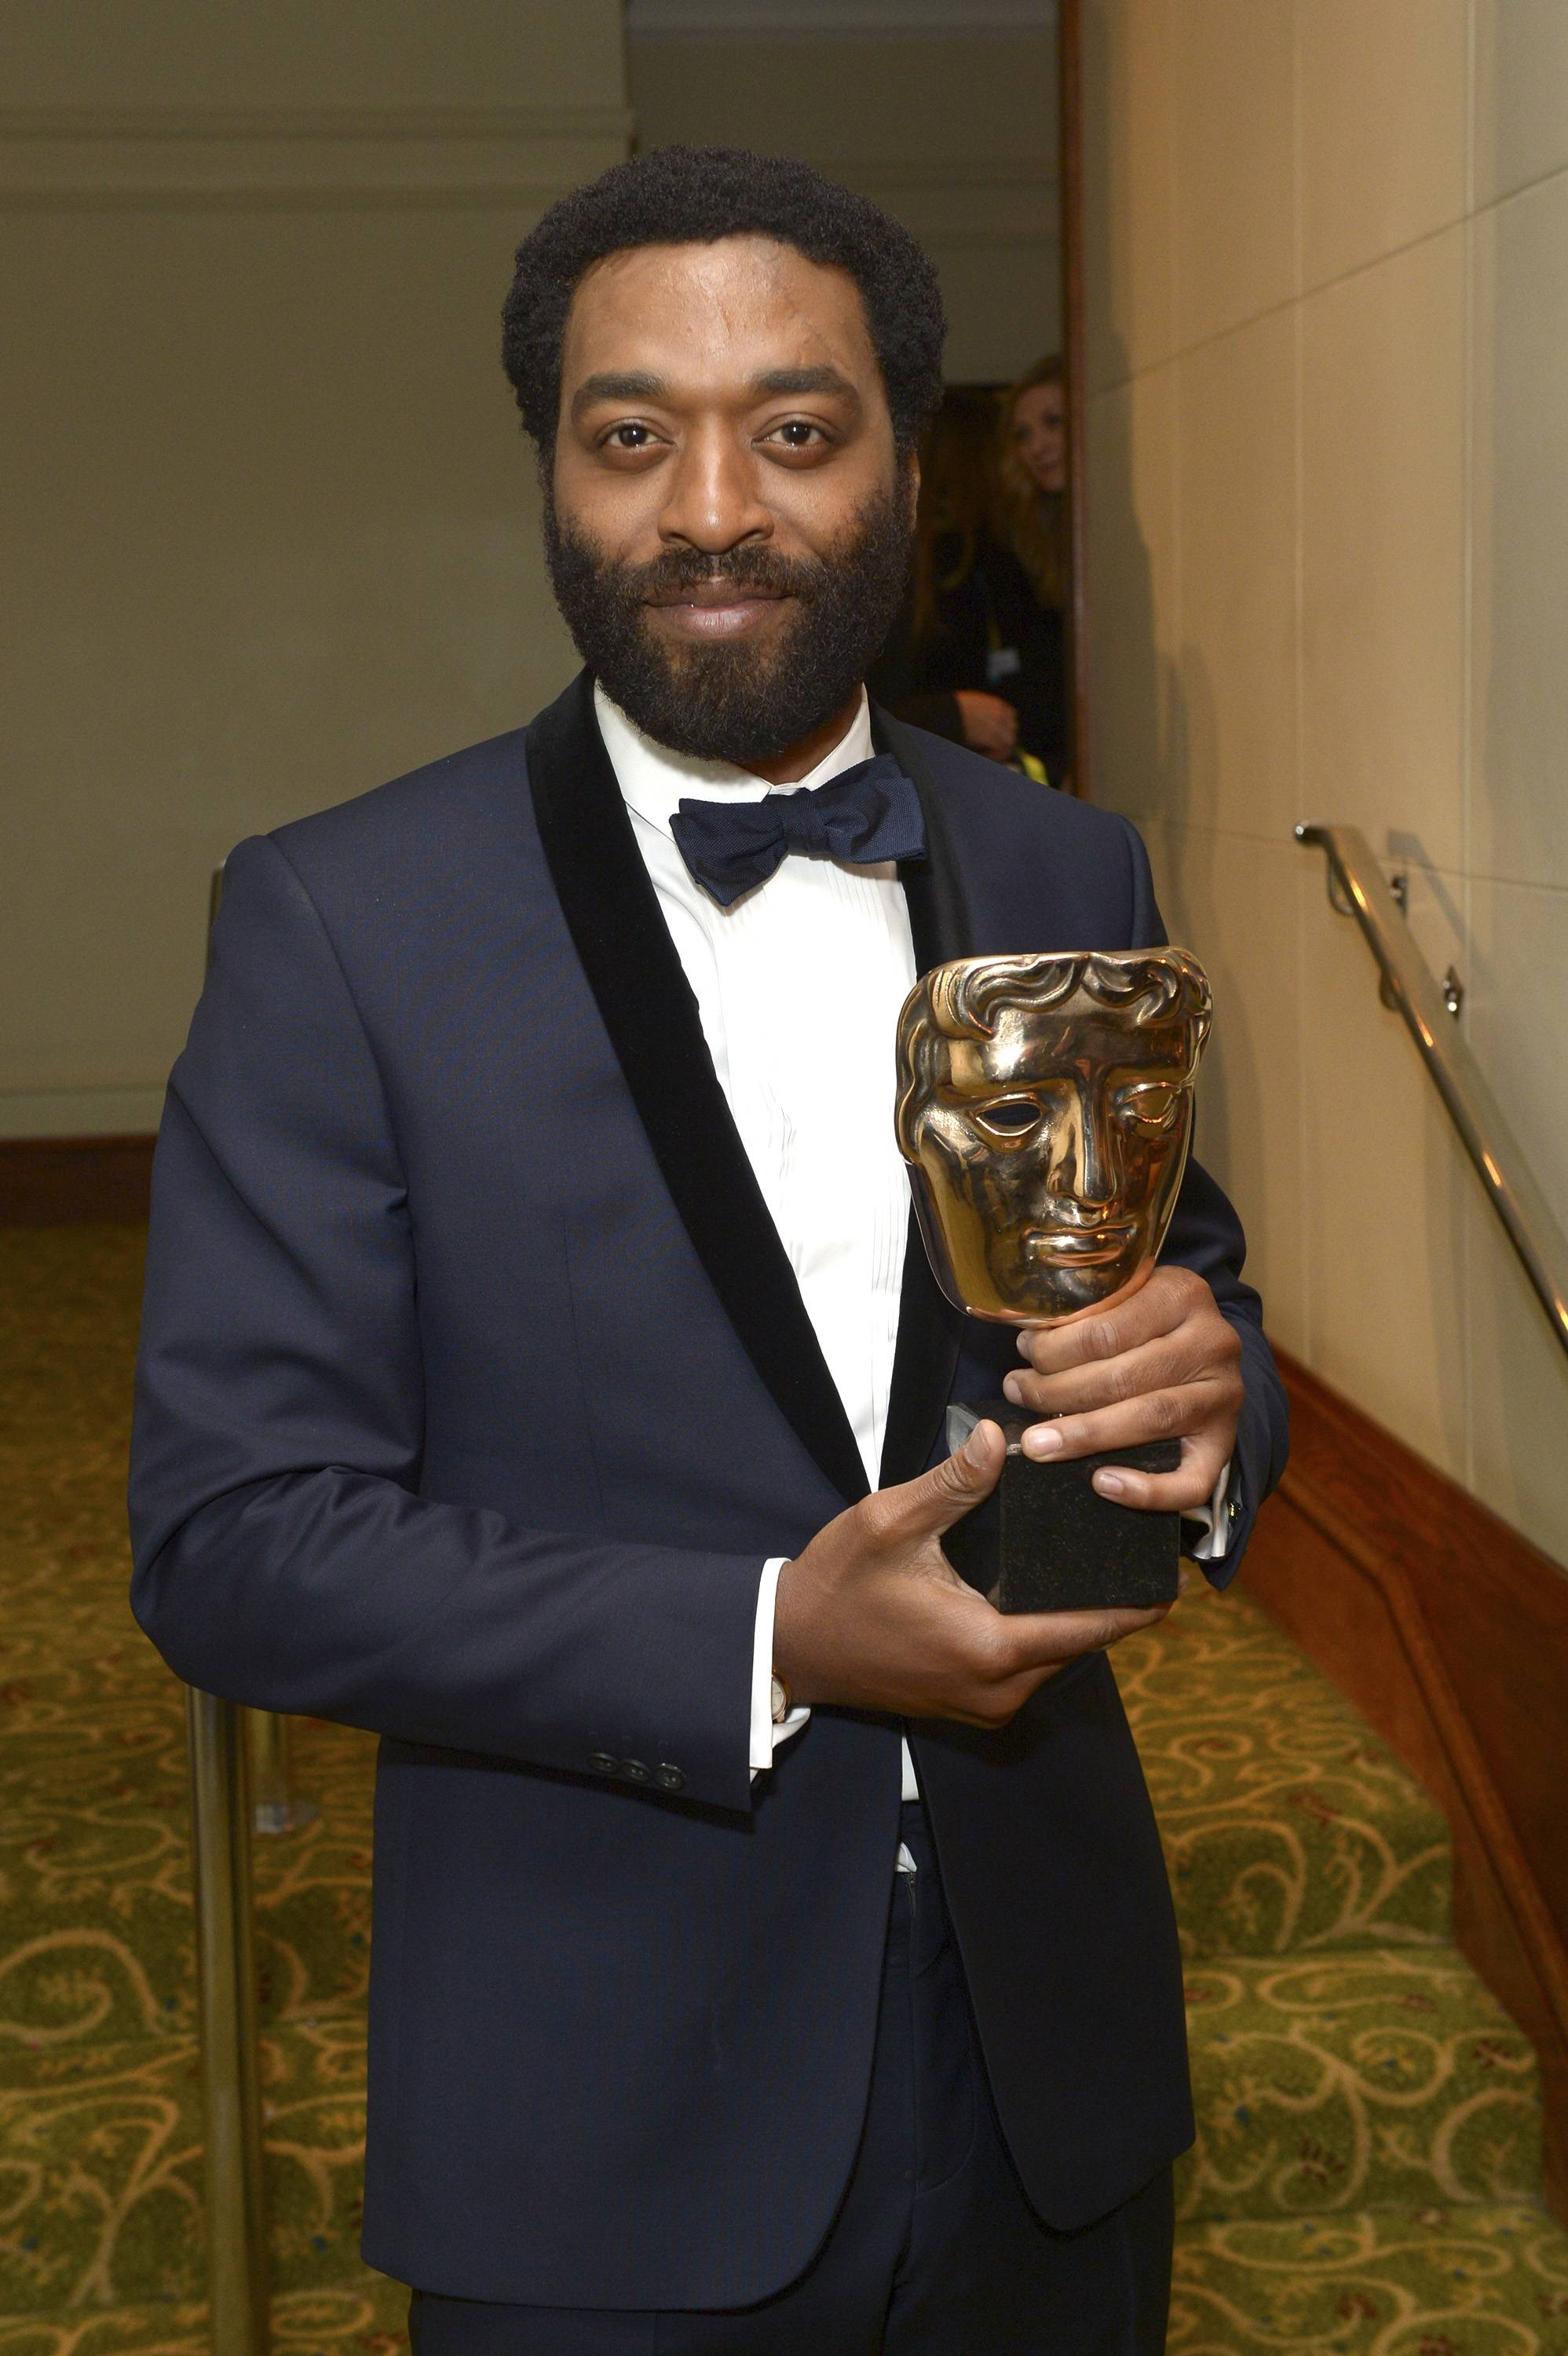 Chiwetel Ejiofor, winner of best actor, attends the EE British Academy Film Awards Official After Party at the Grosvenor House Hotel on Sunday Feb. 16, 2014, in London.